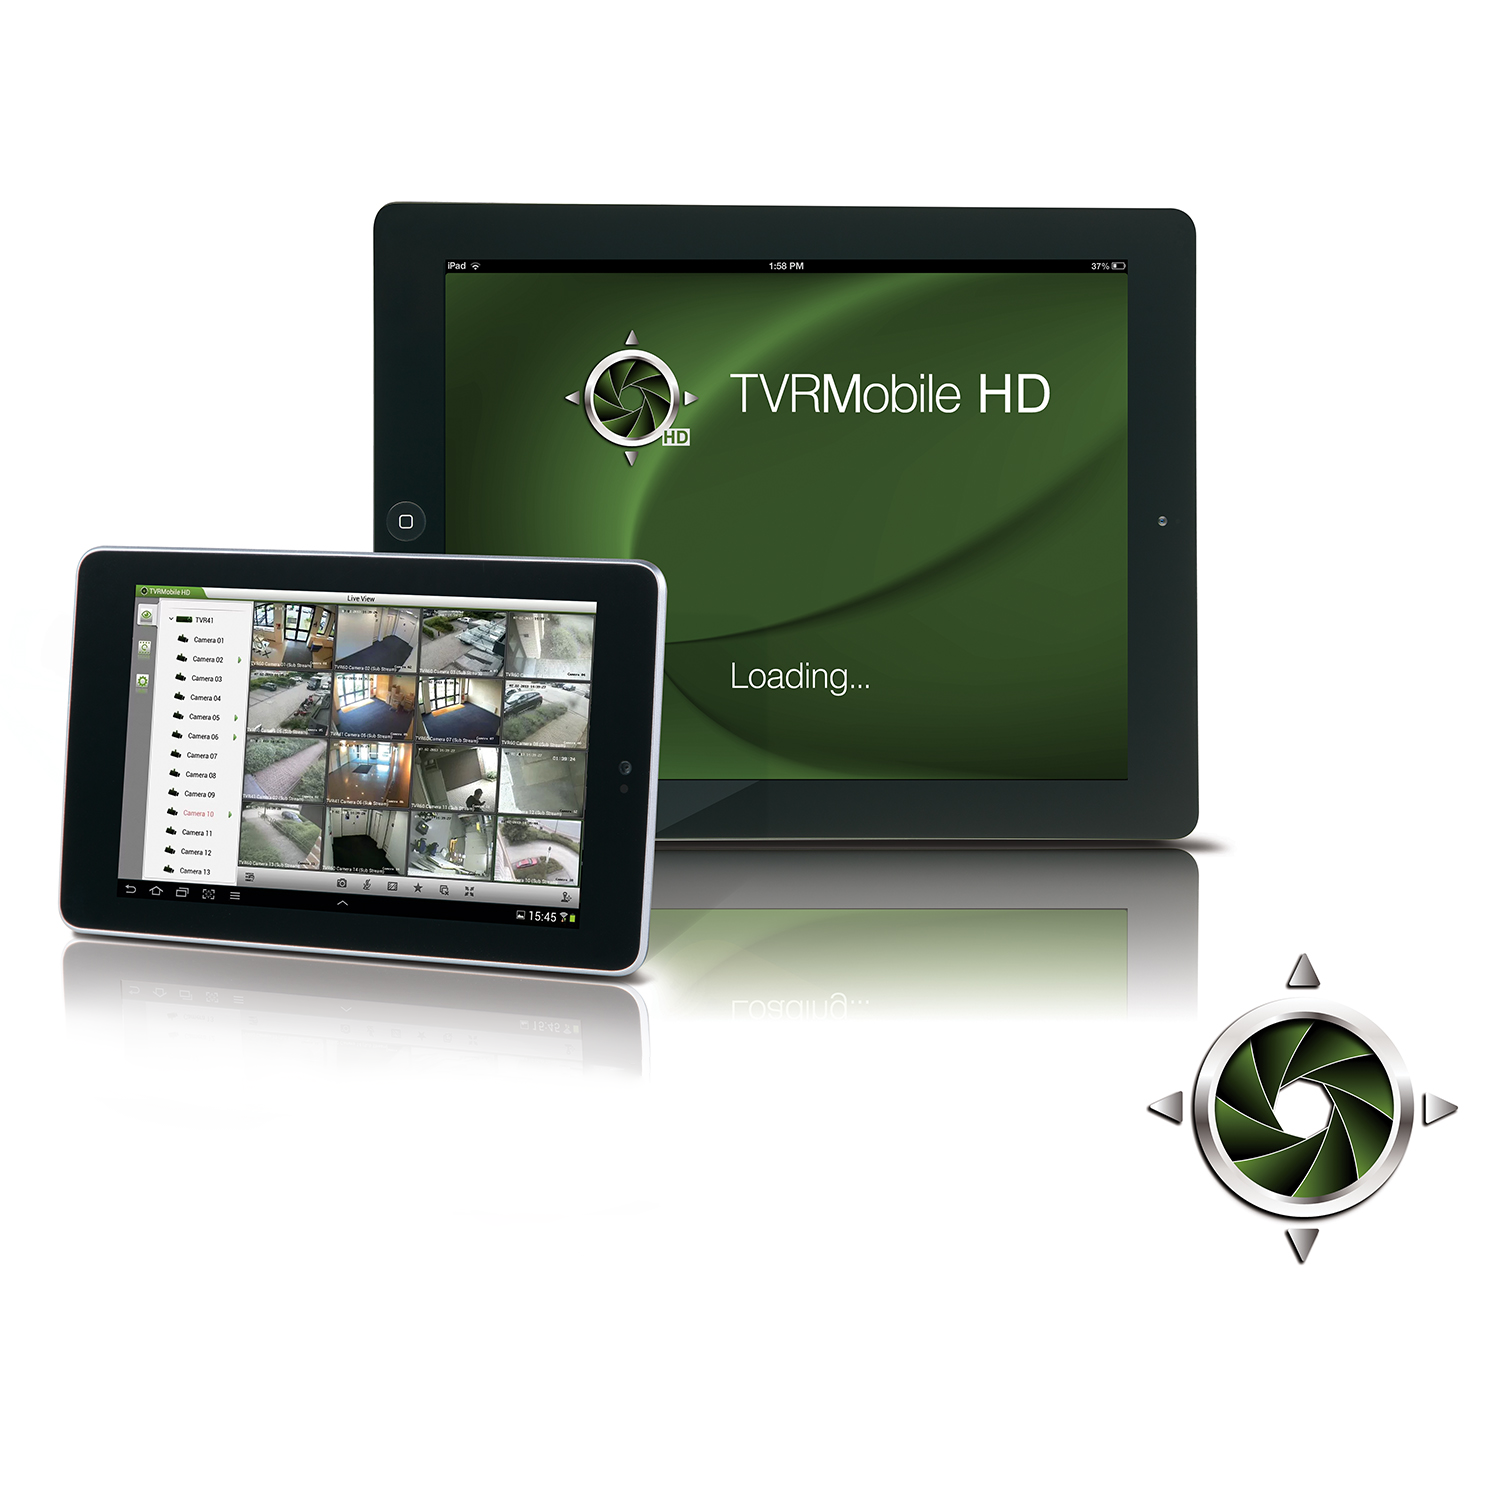 truvision_tvrmobile download